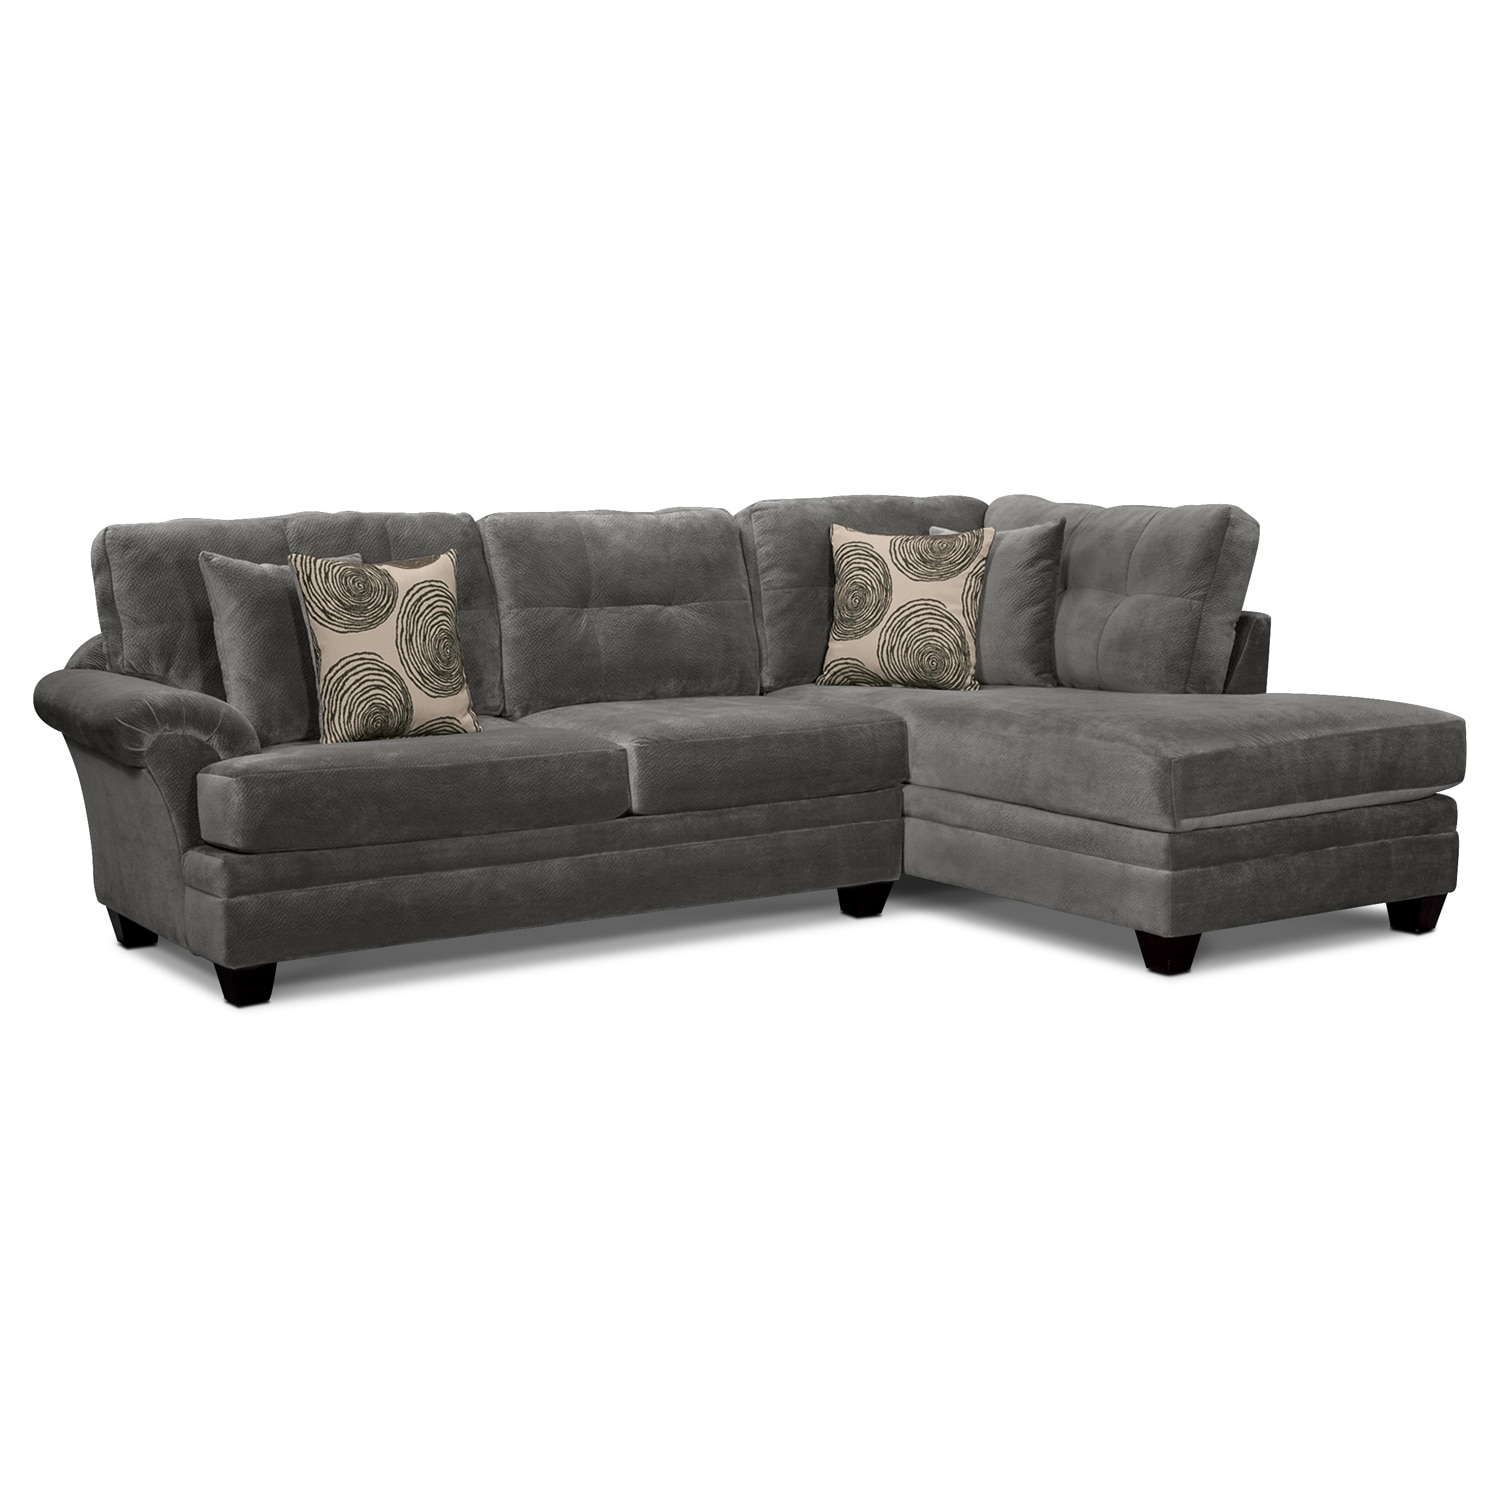 Cordelle 2 piece right facing chaise sectional gray for Sectional furniture